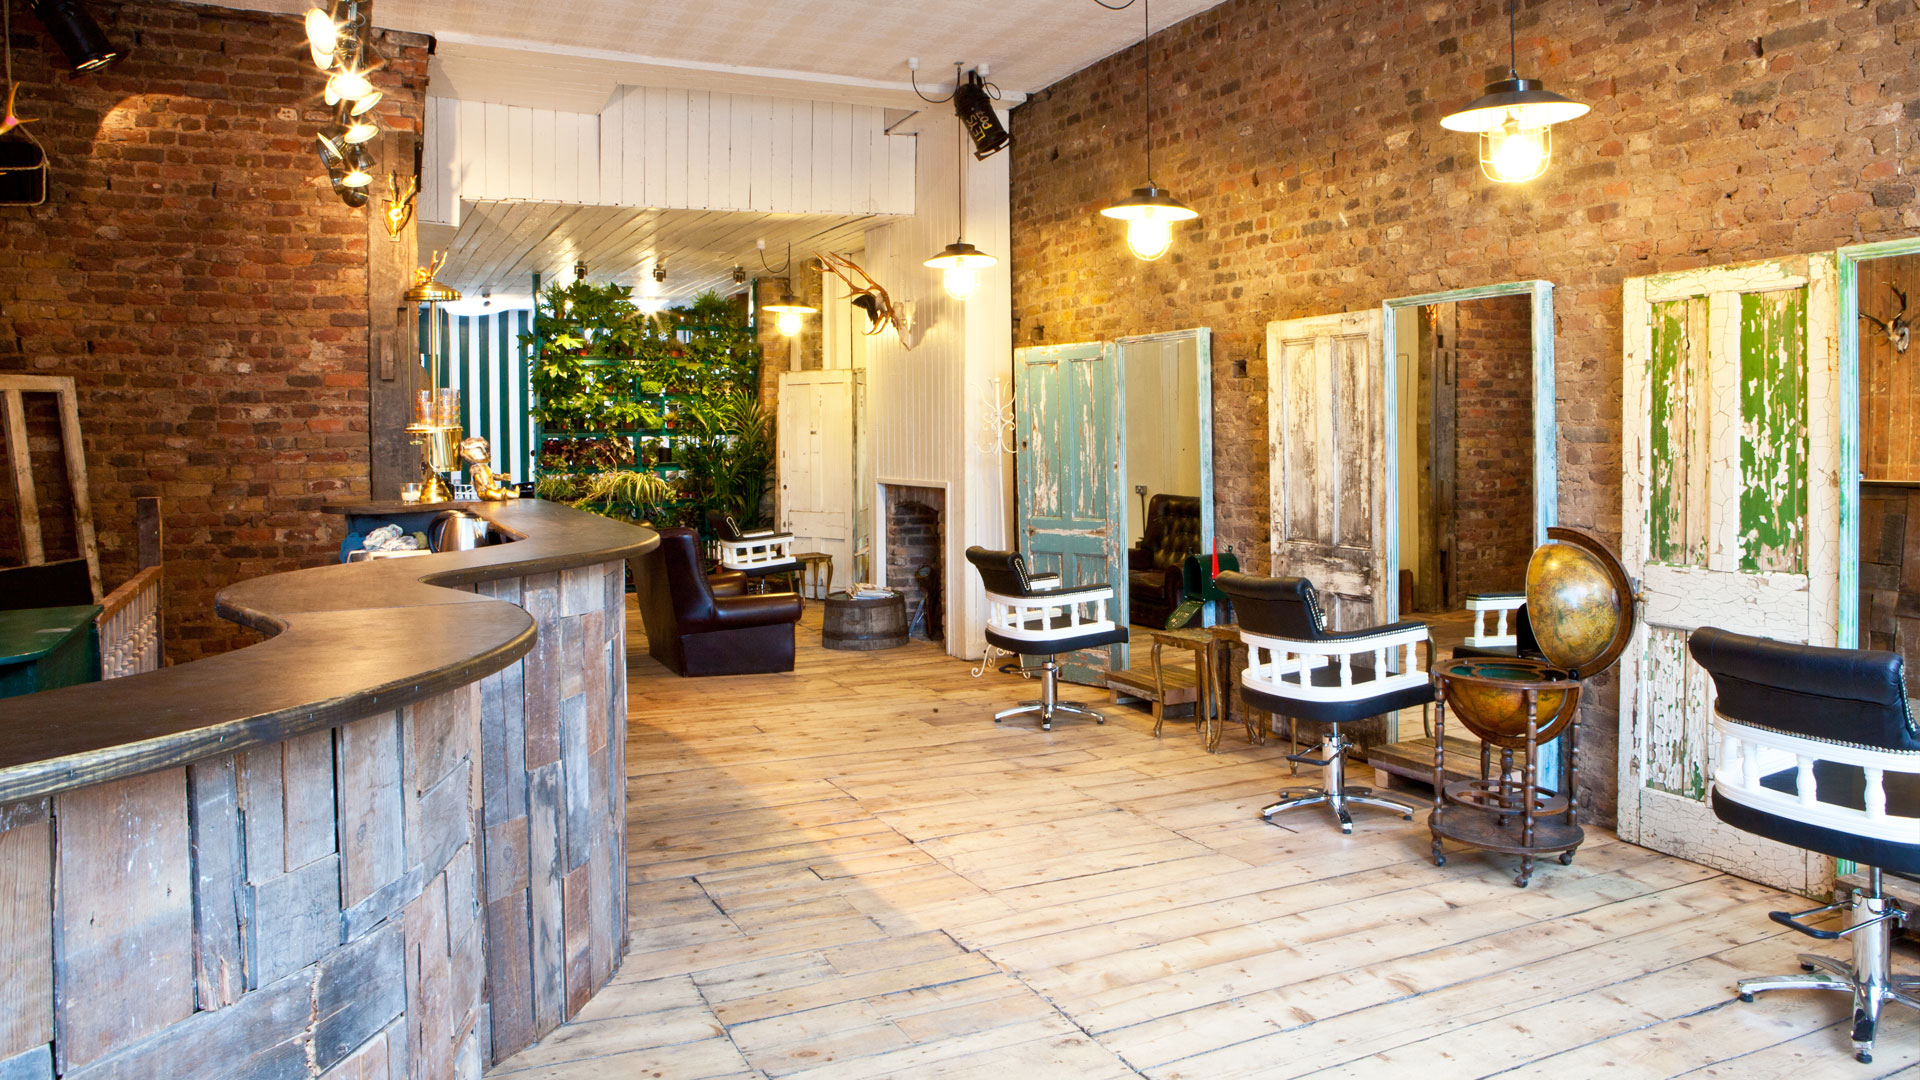 hairdressers in clapton reception area